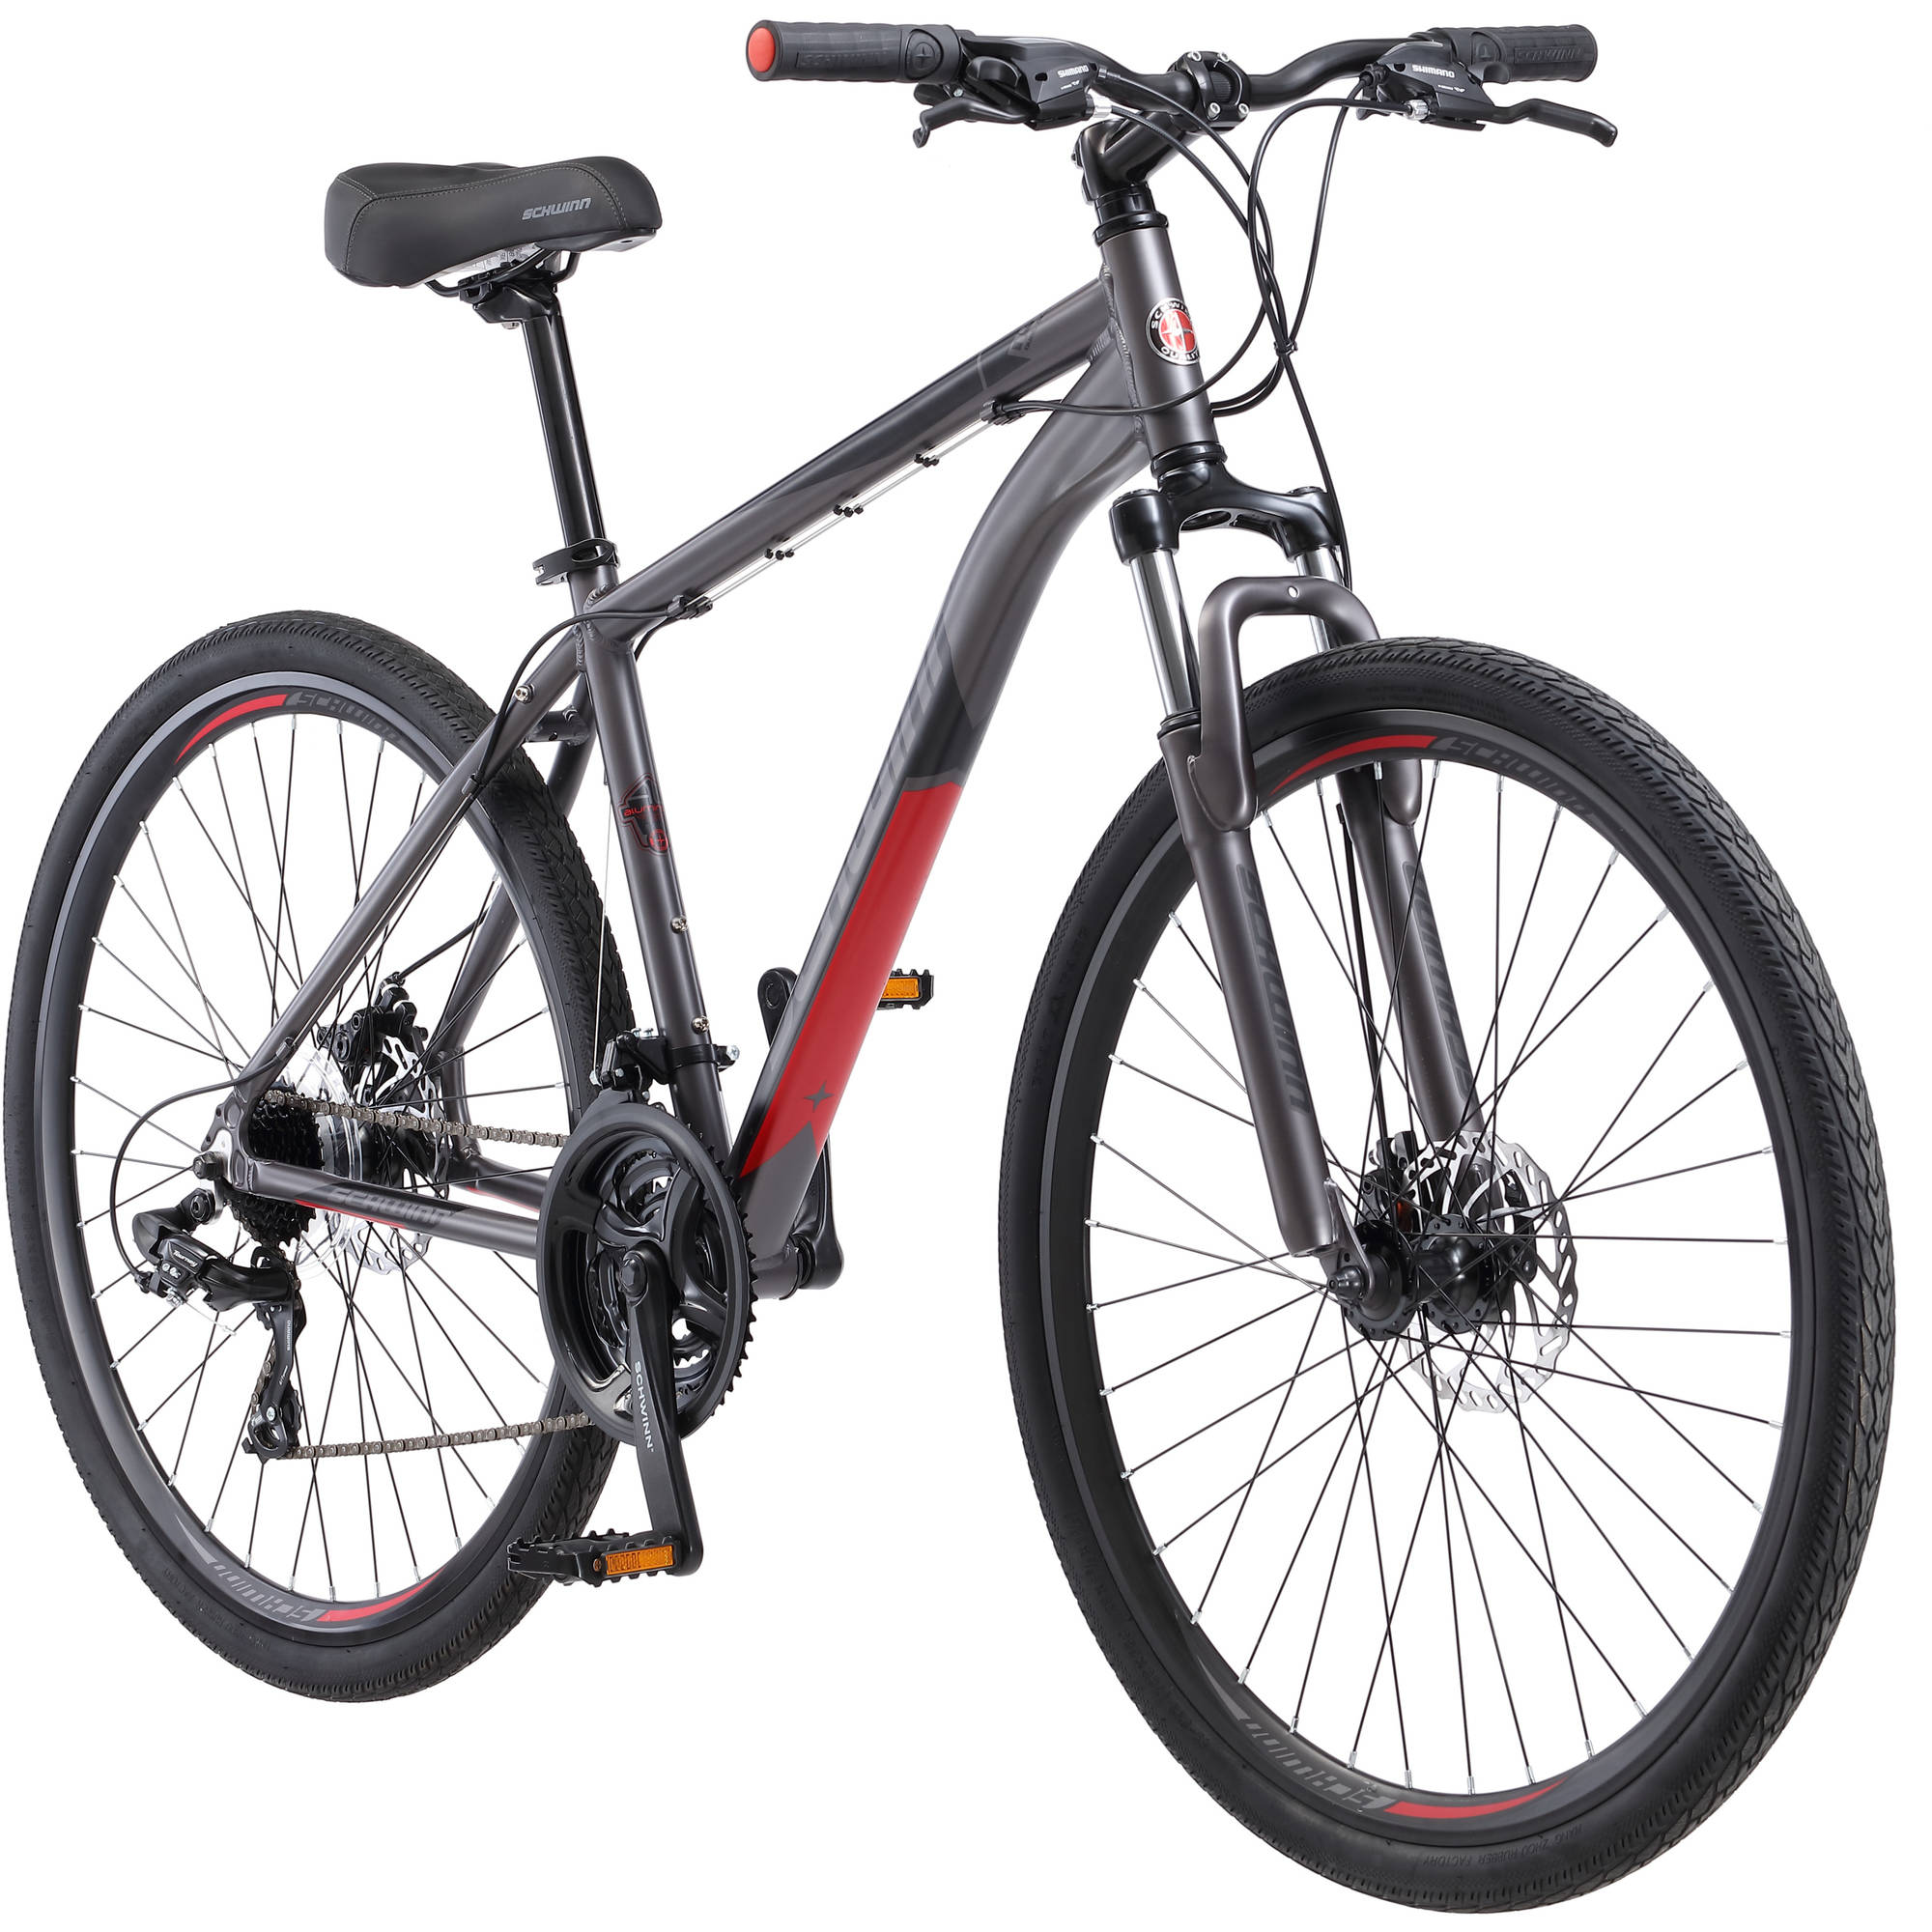 700C Schwinn DSB Men's Hybrid Bike, Matte Gray